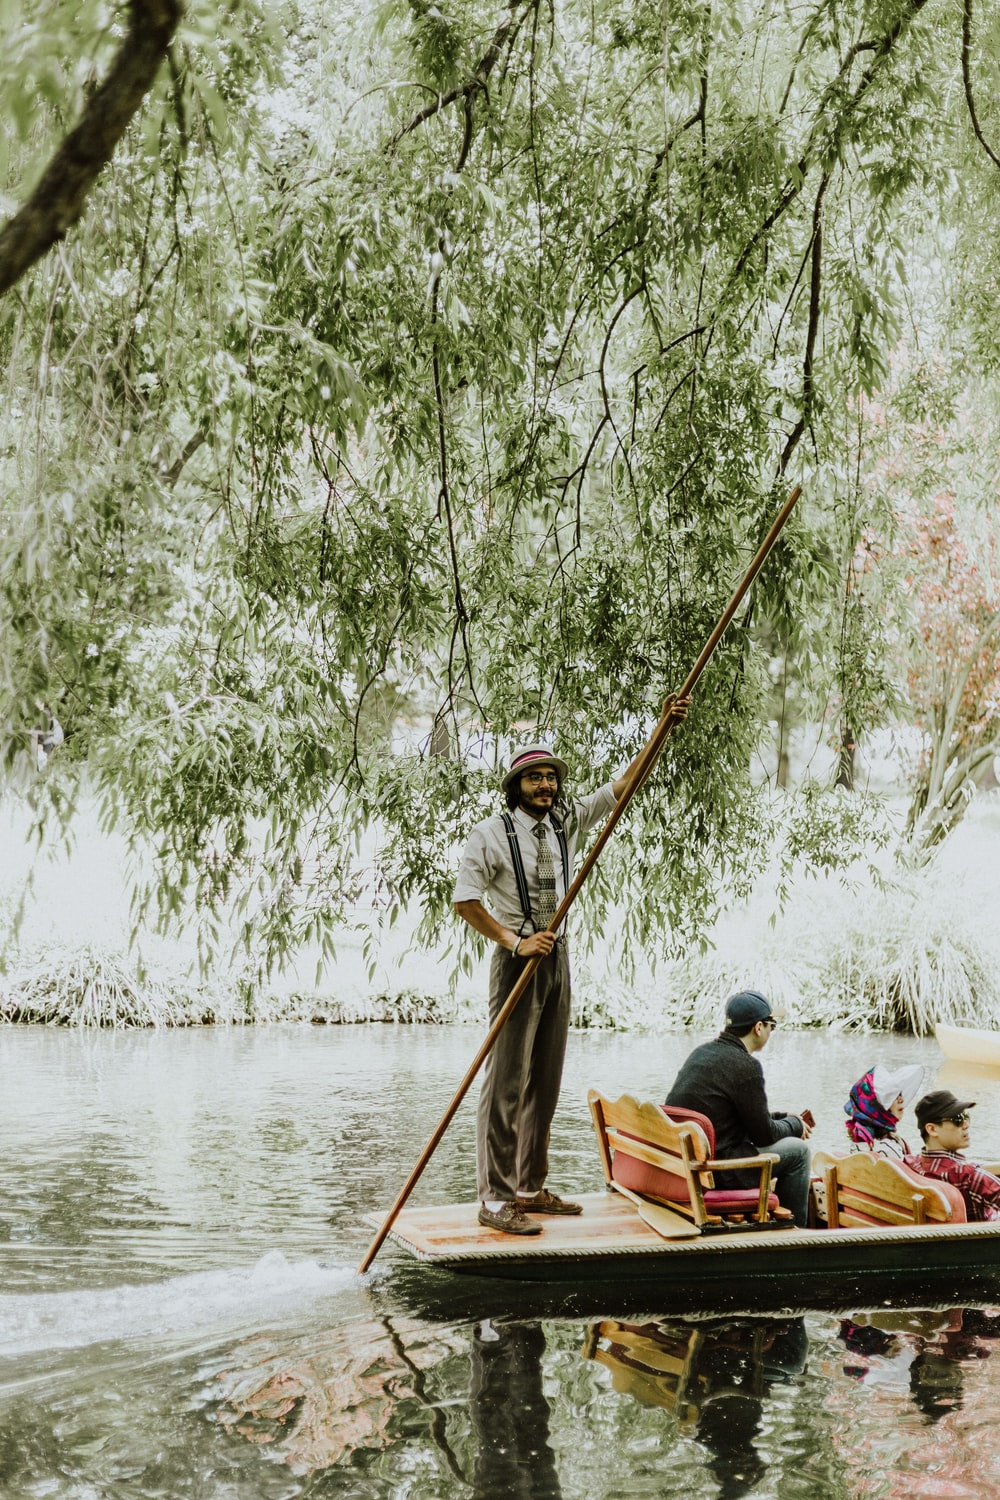 people riding on paddle boat during daytime